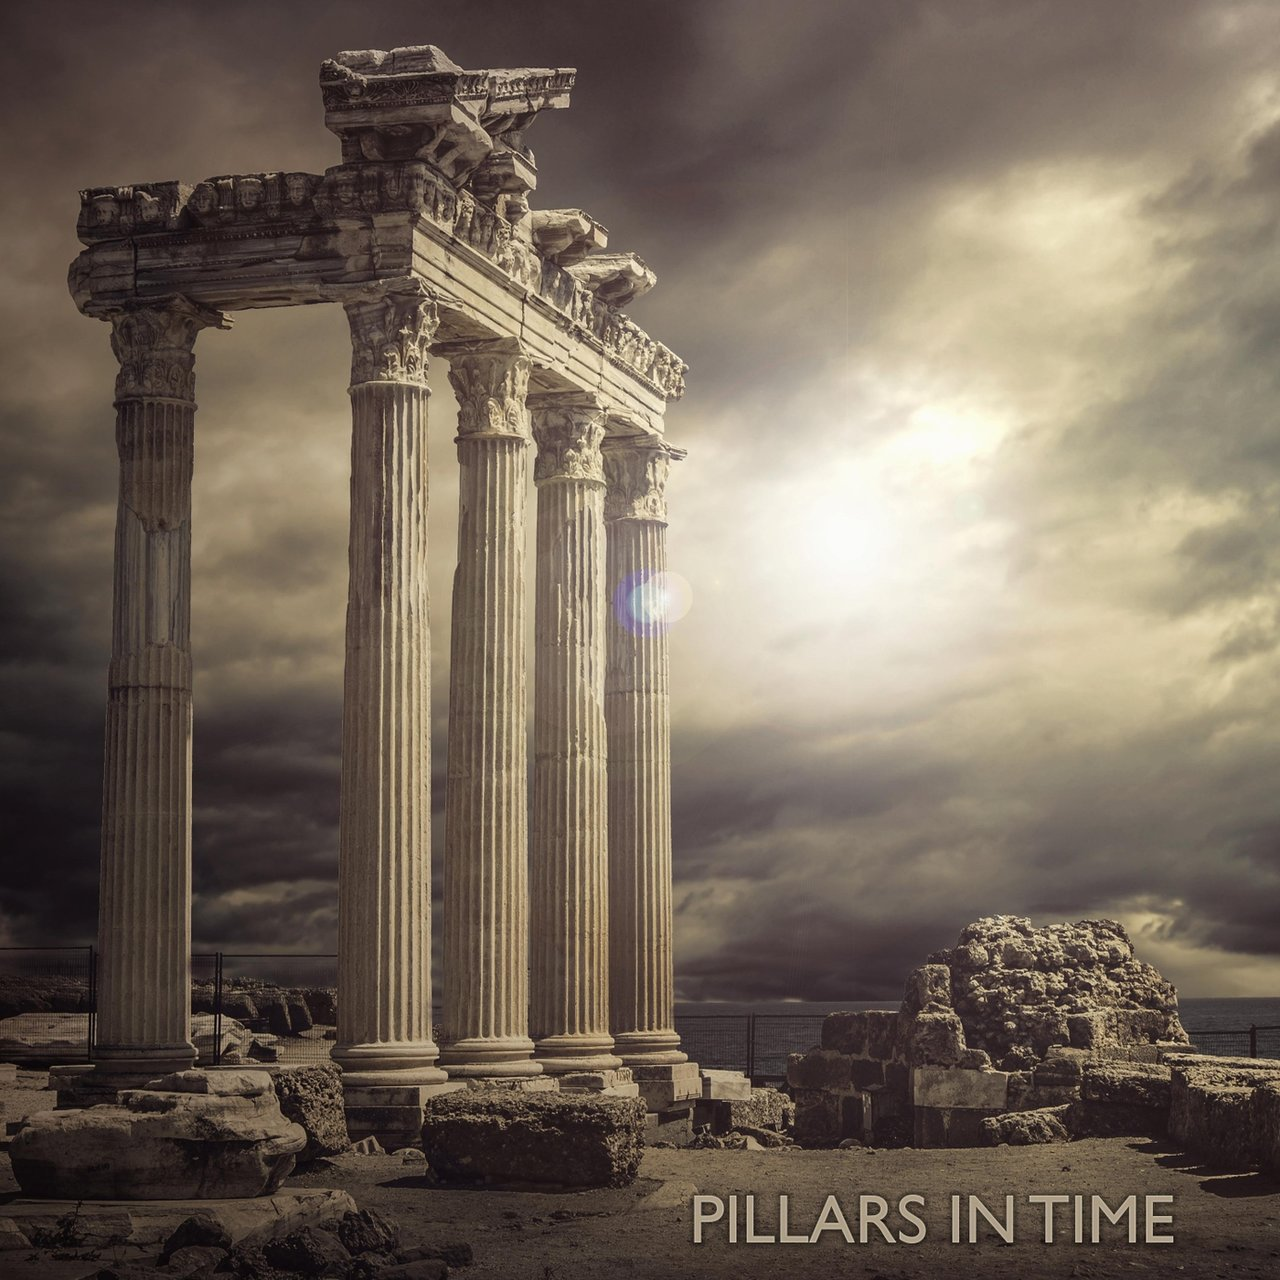 Pillars in Time